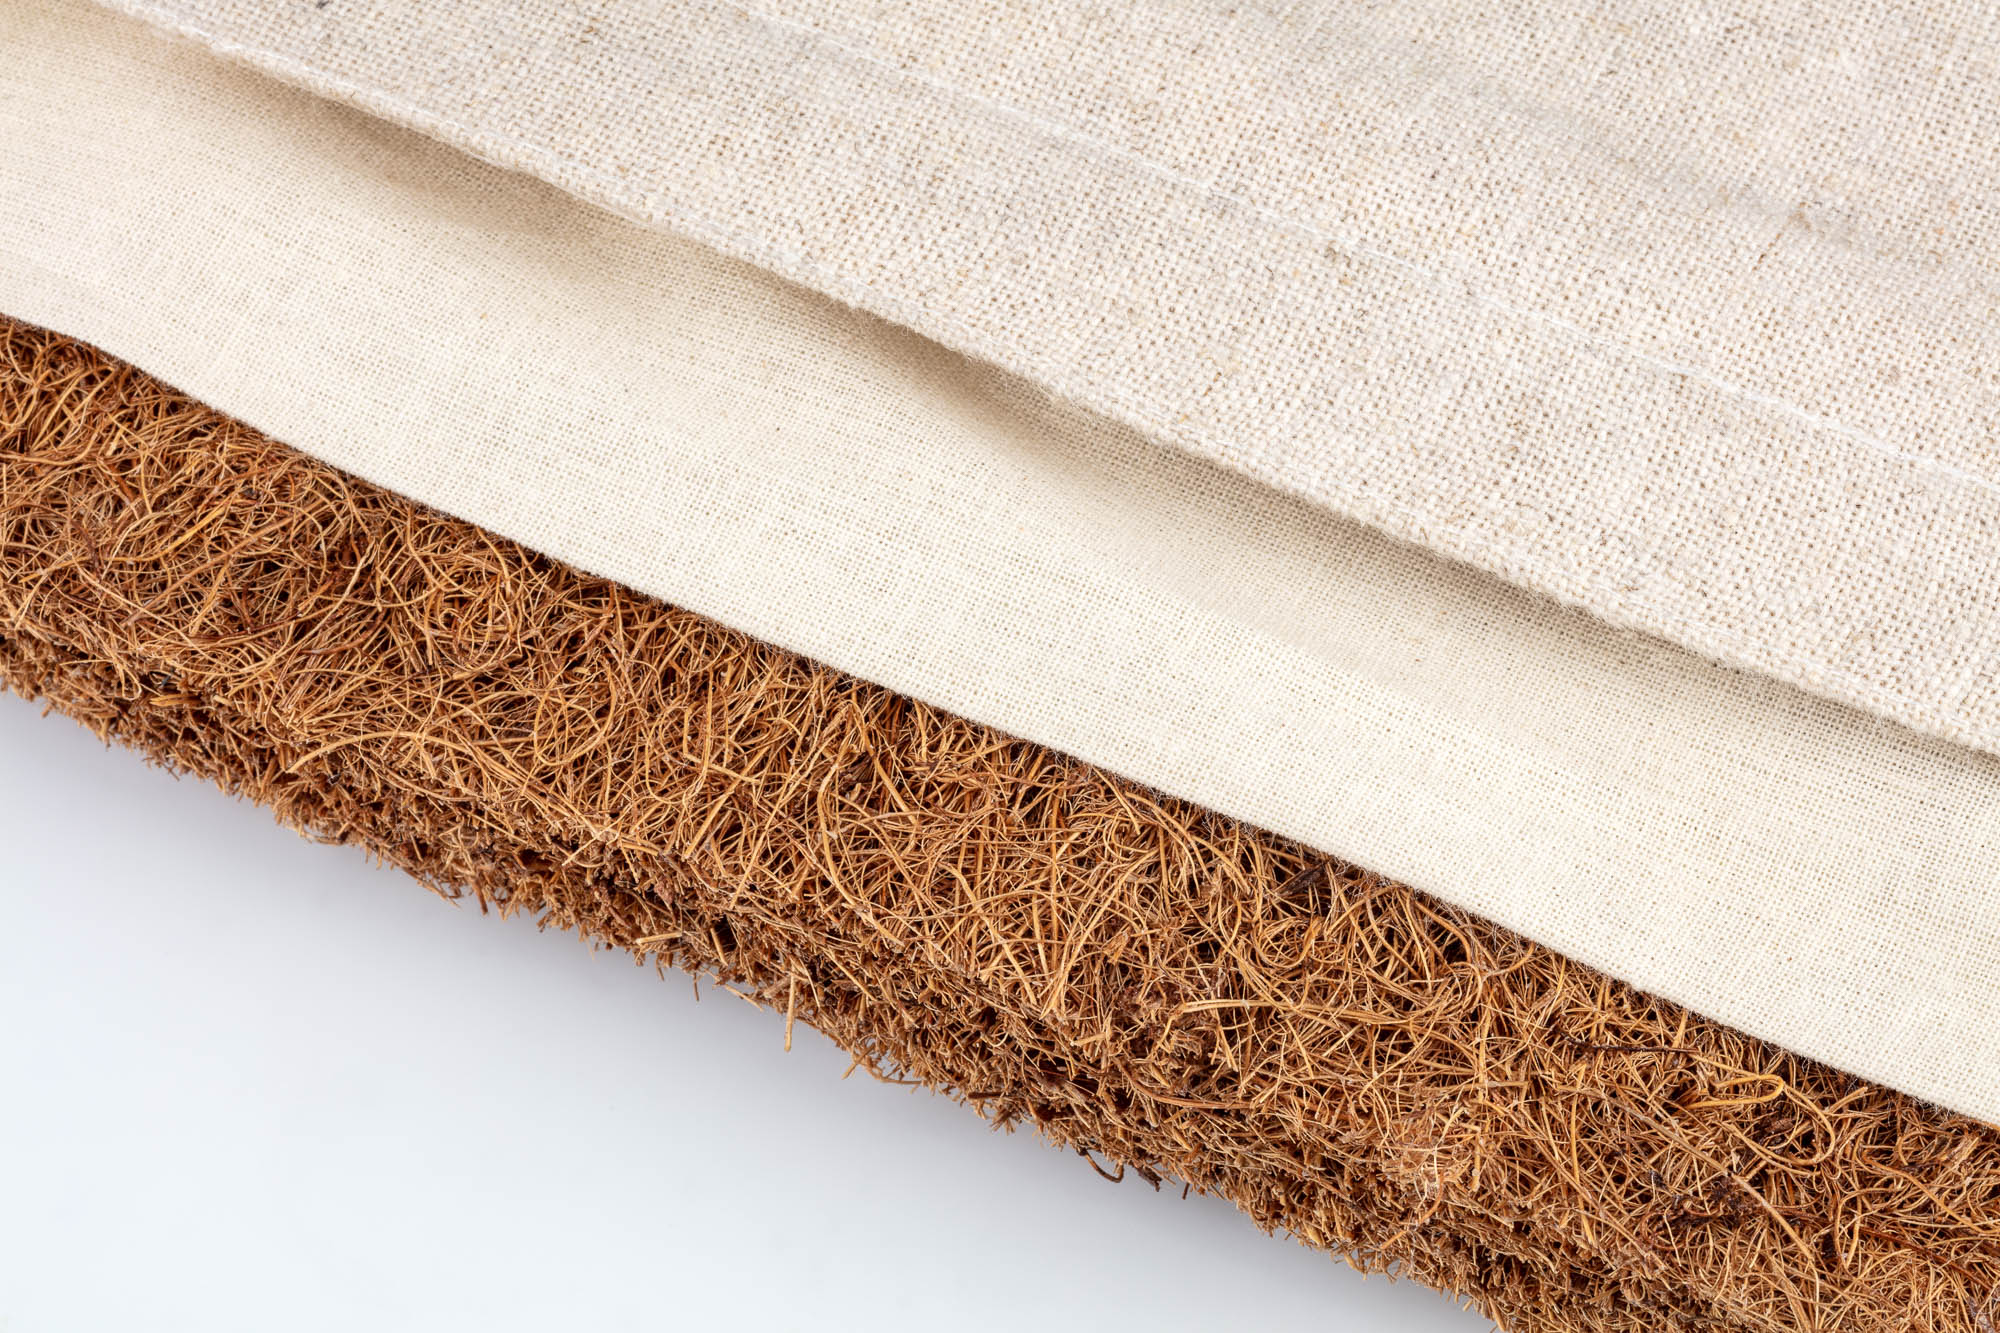 Be Zen Linen cotton and coconut fibres - Product photo for Amazon e-comemrce